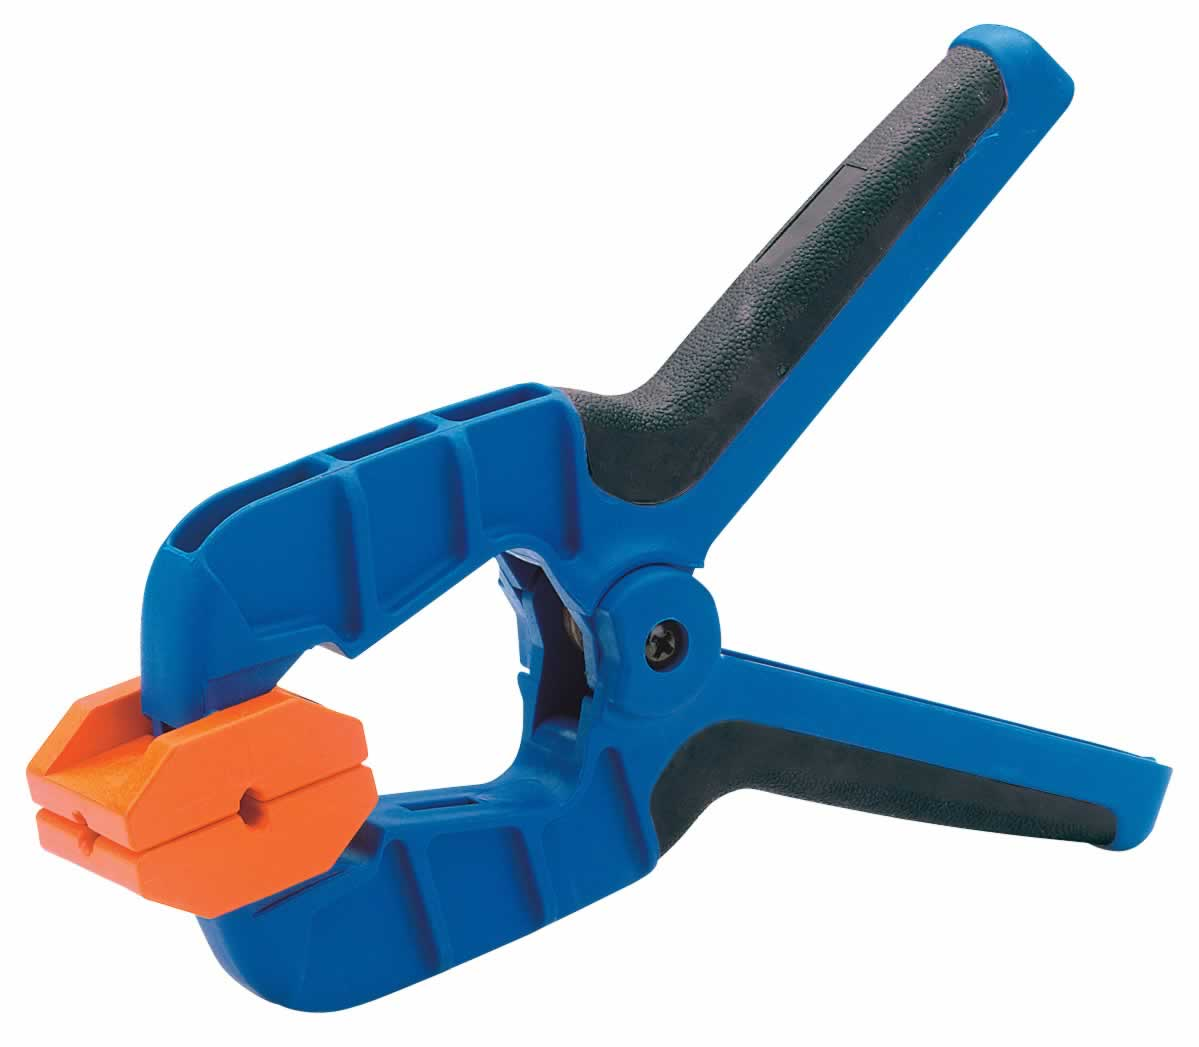 EXPERT 33MM CAPACITY SOFT GRIP SPRING CLAMP